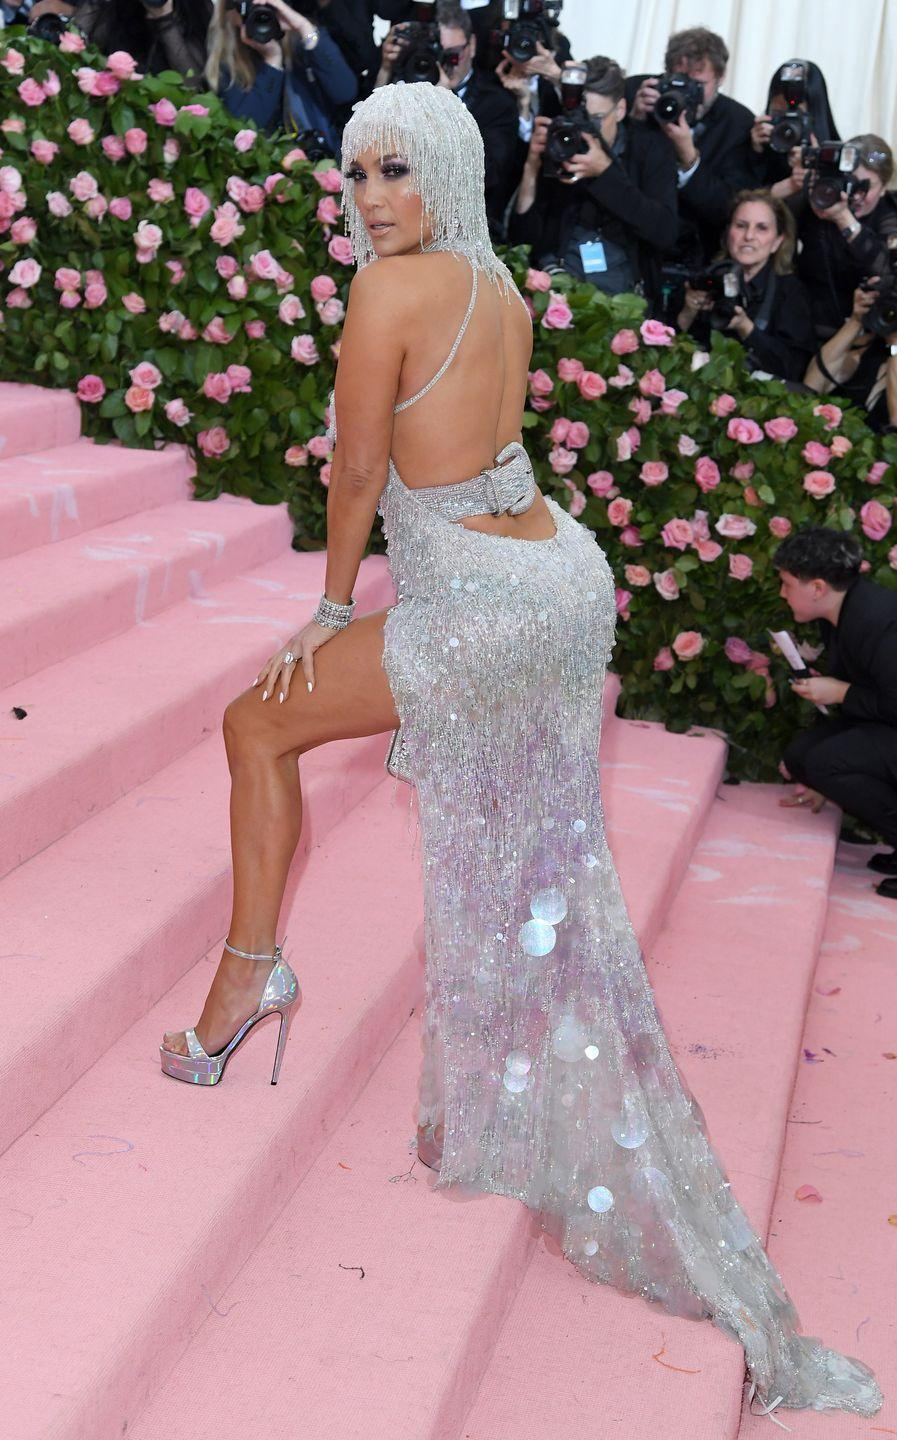 "<p>She straight-up sparkles in this Versace gown at the<a href=""https://www.cosmopolitan.com/uk/fashion/celebrity/g27379305/met-gala-2019/"" rel=""nofollow noopener"" target=""_blank"" data-ylk=""slk:2019 Met Gala"" class=""link rapid-noclick-resp""> 2019 Met Gala</a>, accessorizing with a bejeweled headpiece and ALL the jewelry. I mean, I'm literally blinded in the best way possible.</p>"